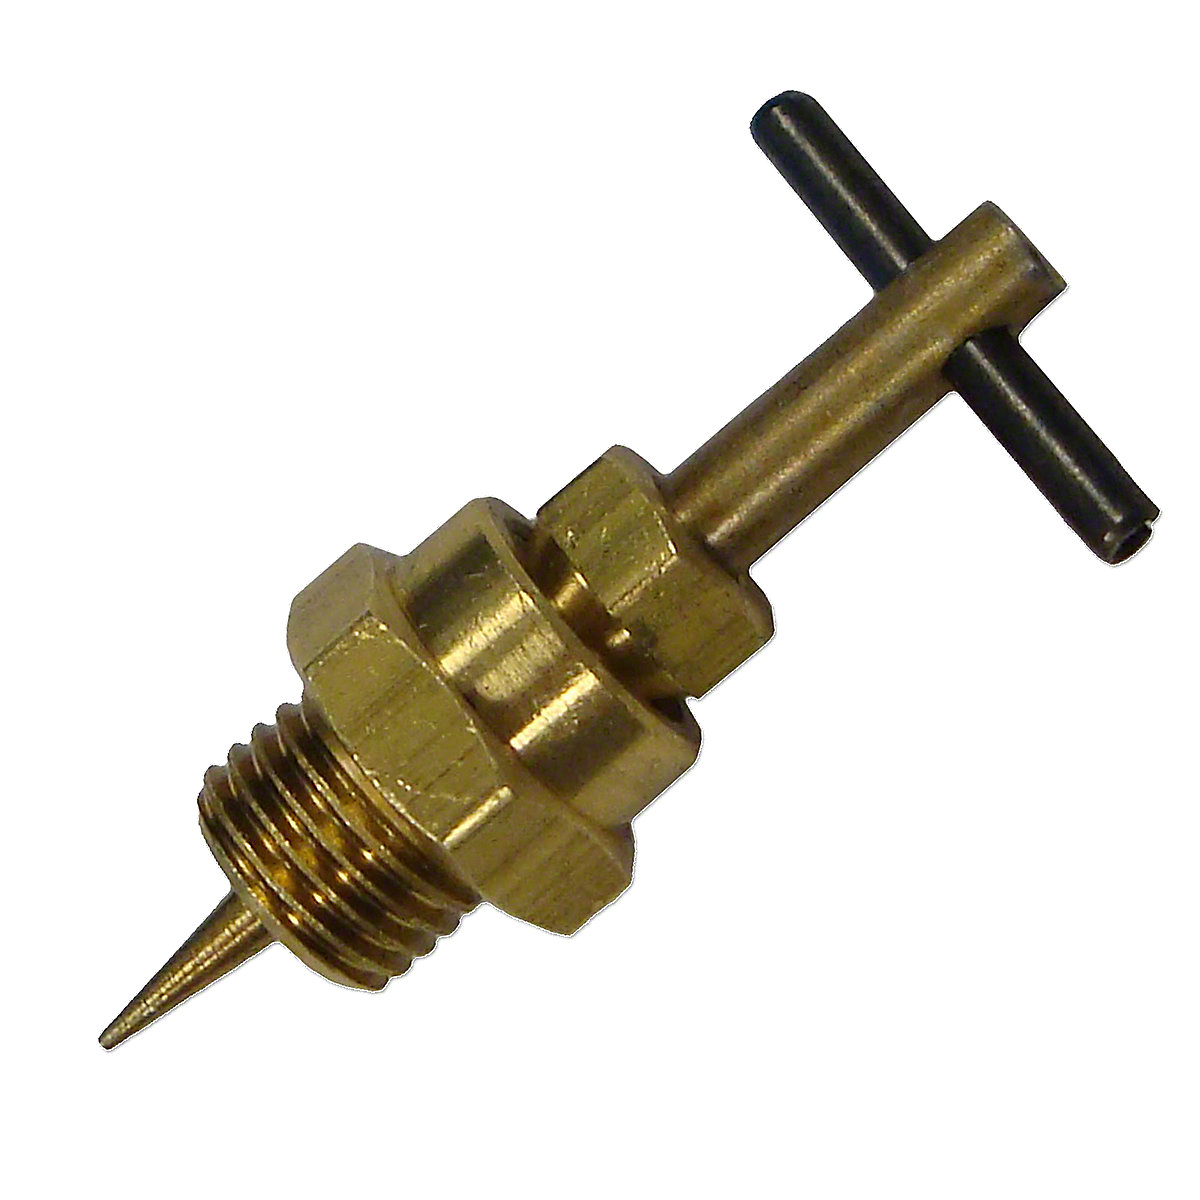 Zenith Main Jet Adjusting Needle Assembly For Massey Ferguson: TE20, TO20, Massey Harris: 44, 55, 44 Special, 44-6, 444, 555.